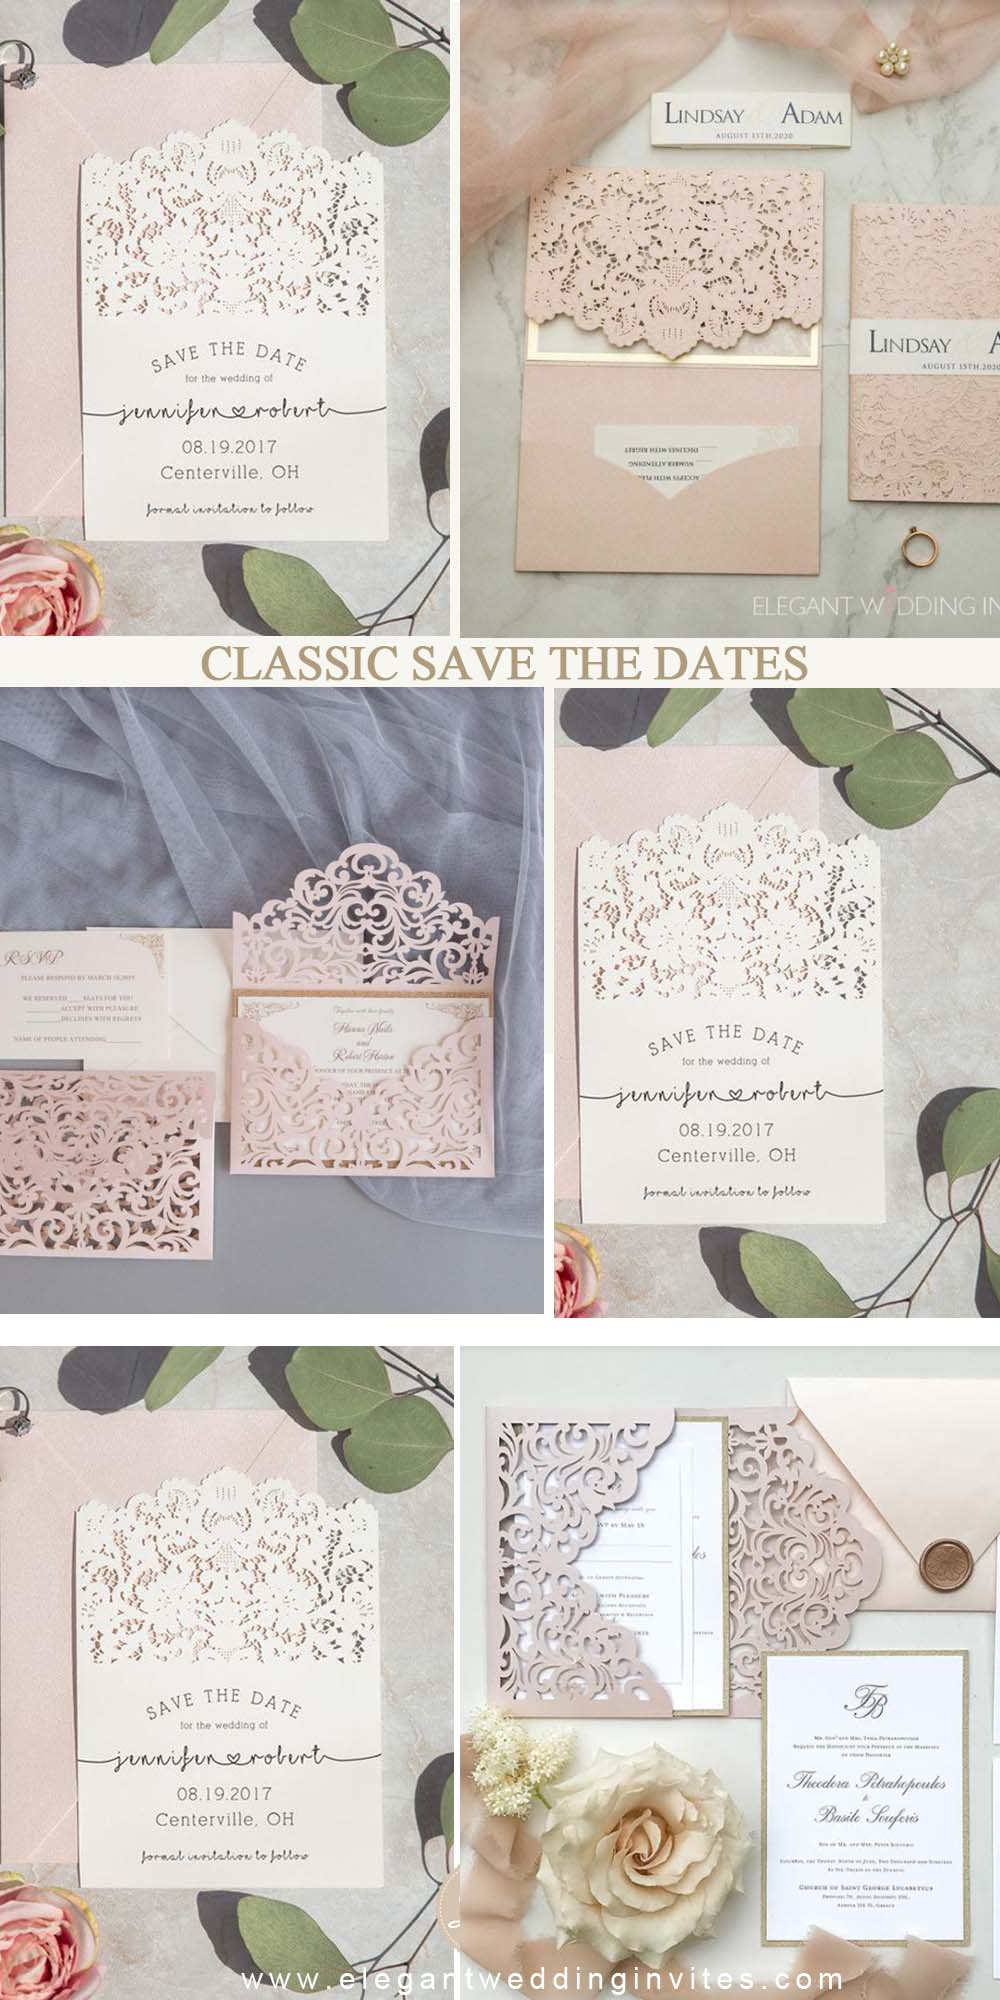 classic elegant save the date cards macthing various wedding invitations